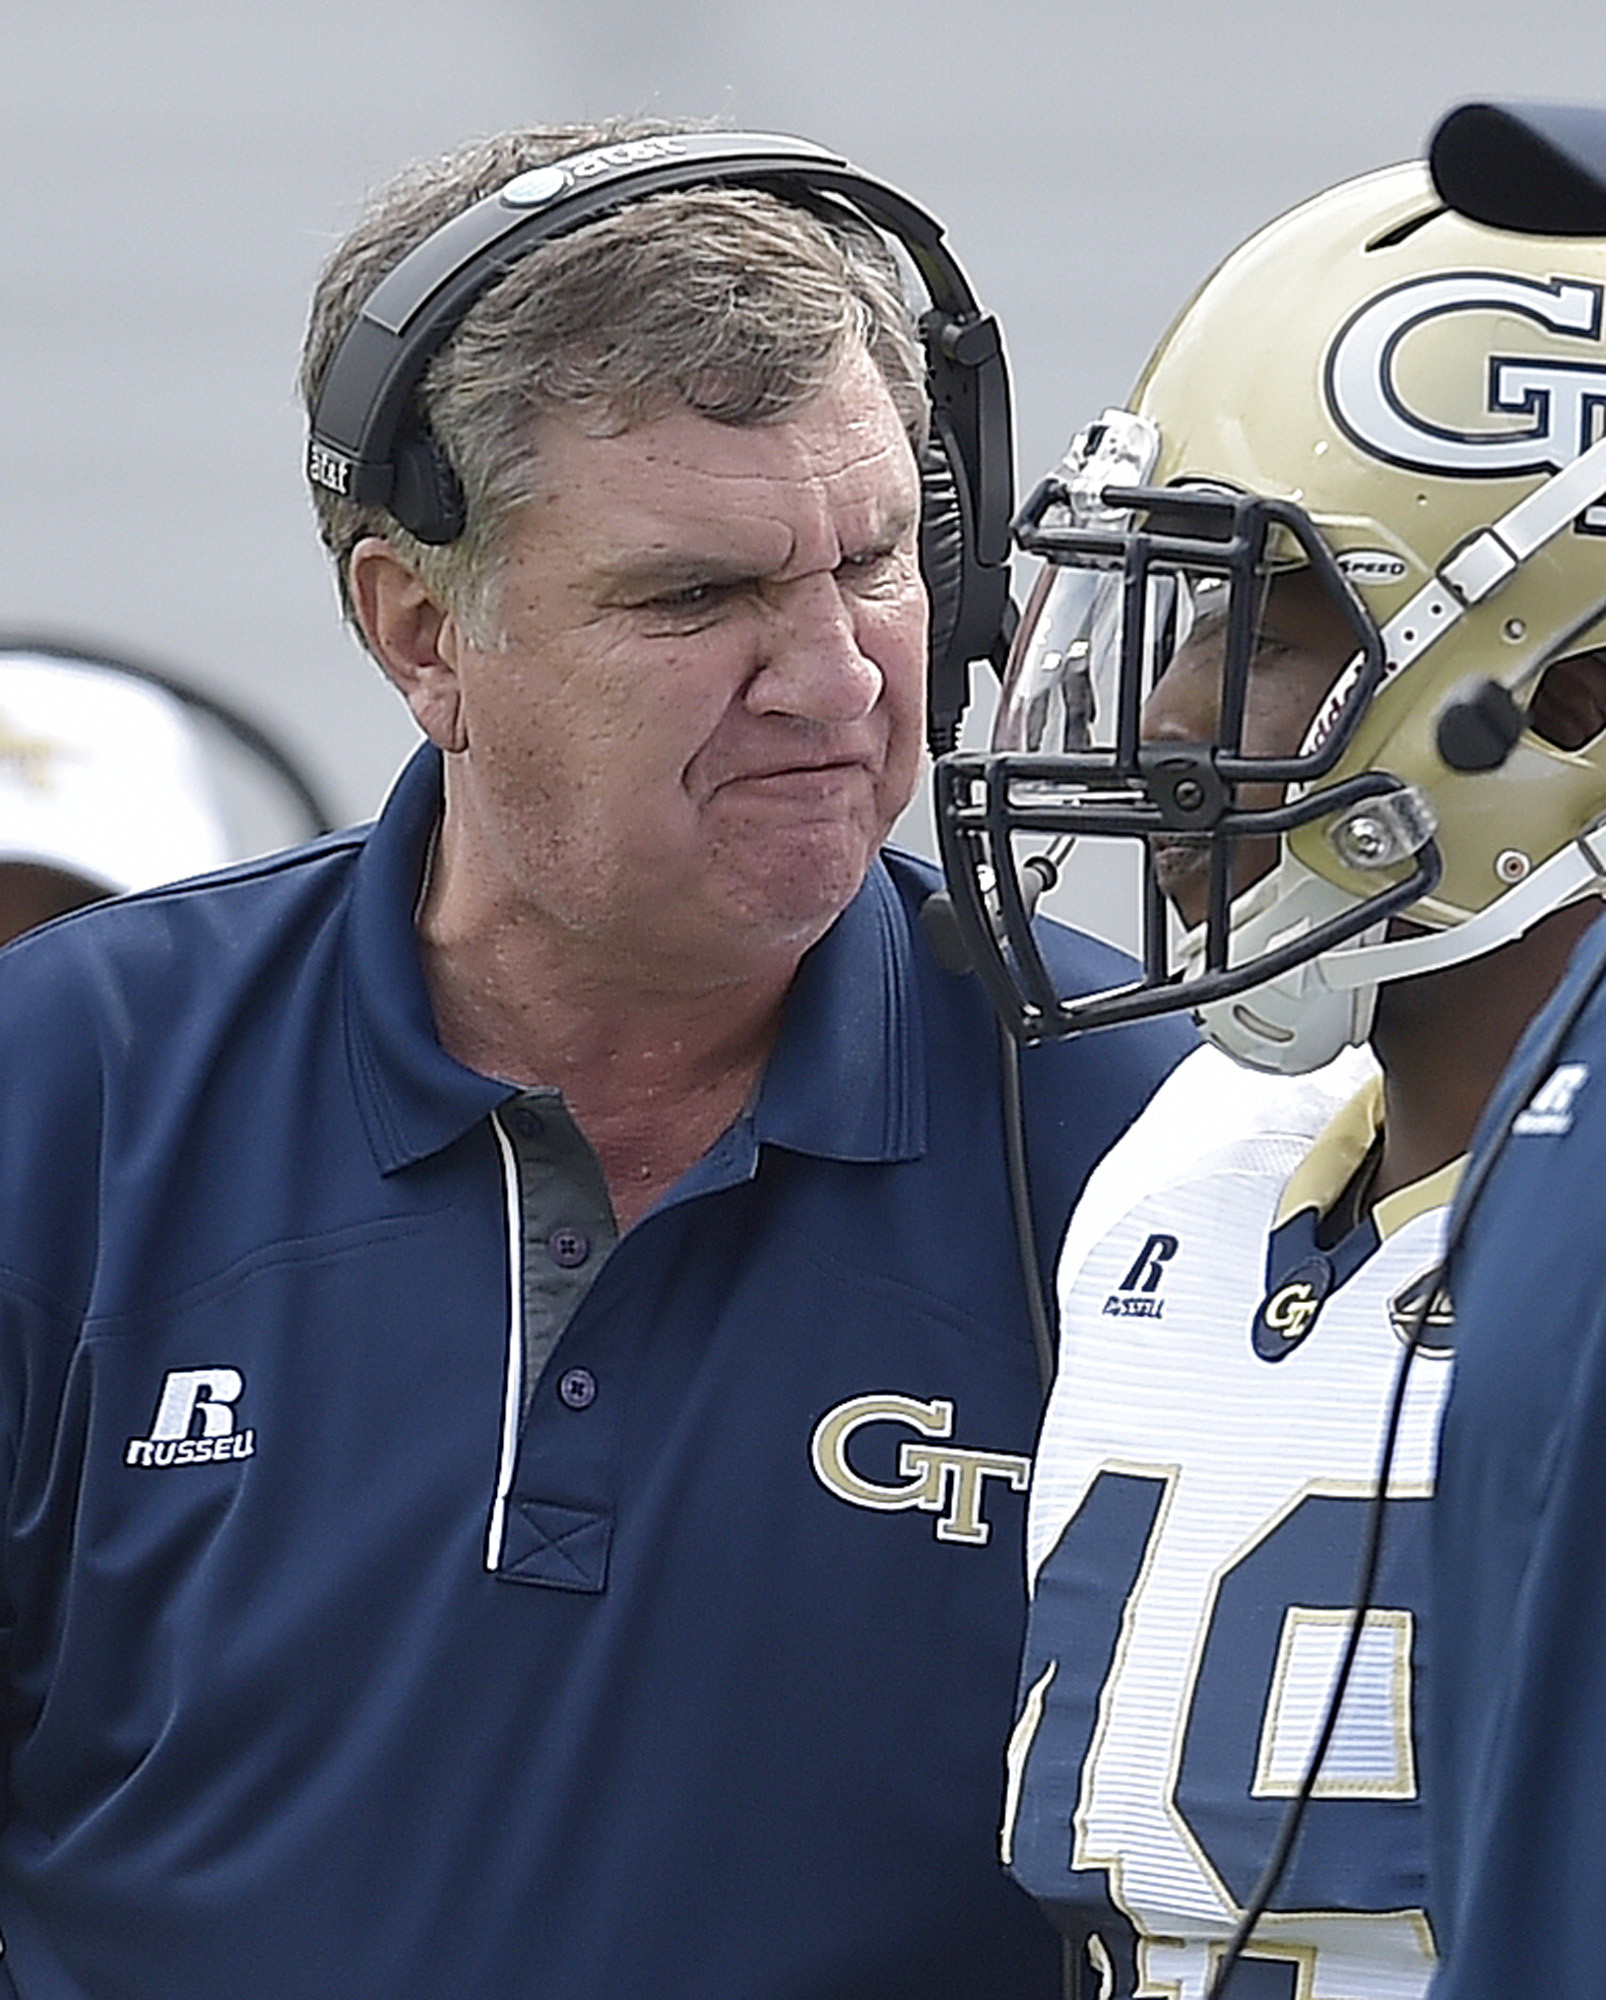 Georgia Tech head coach Paul Johnson speaks to a player on the sideline against Tulane during the first half of an NCAA college football game, Saturday, Sept. 12, 2015, in Atlanta. (AP Photo/Mike Stewart)